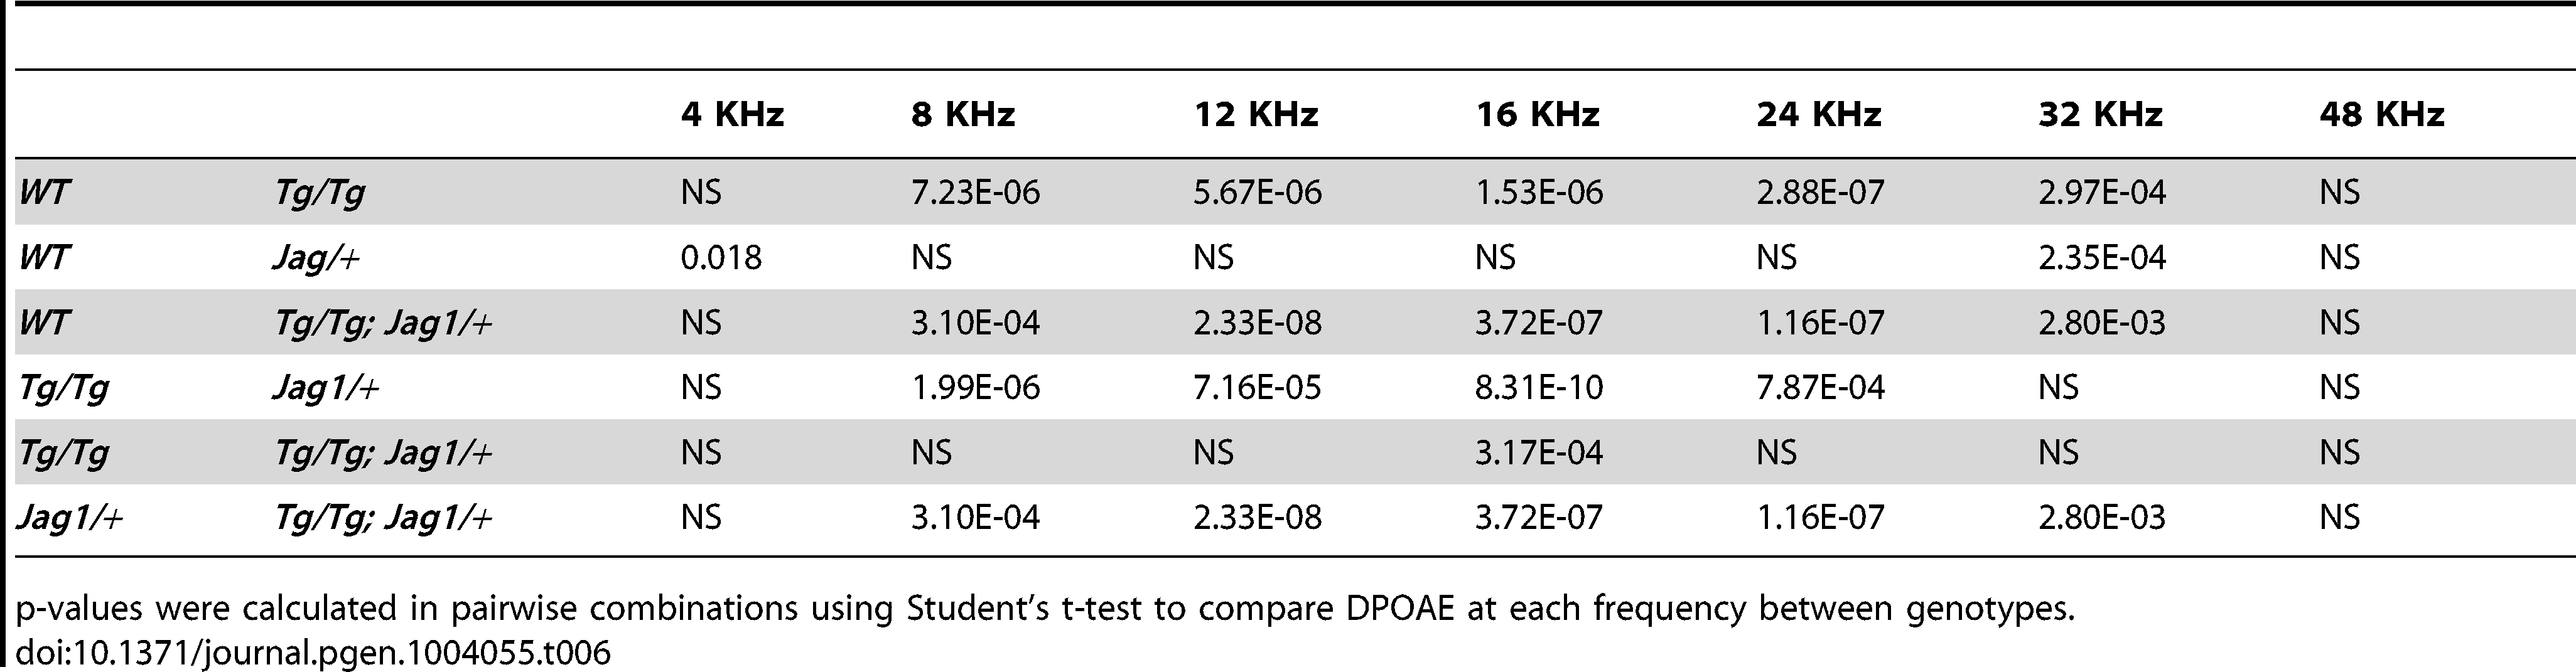 DPOAE p-values for individual frequencies.